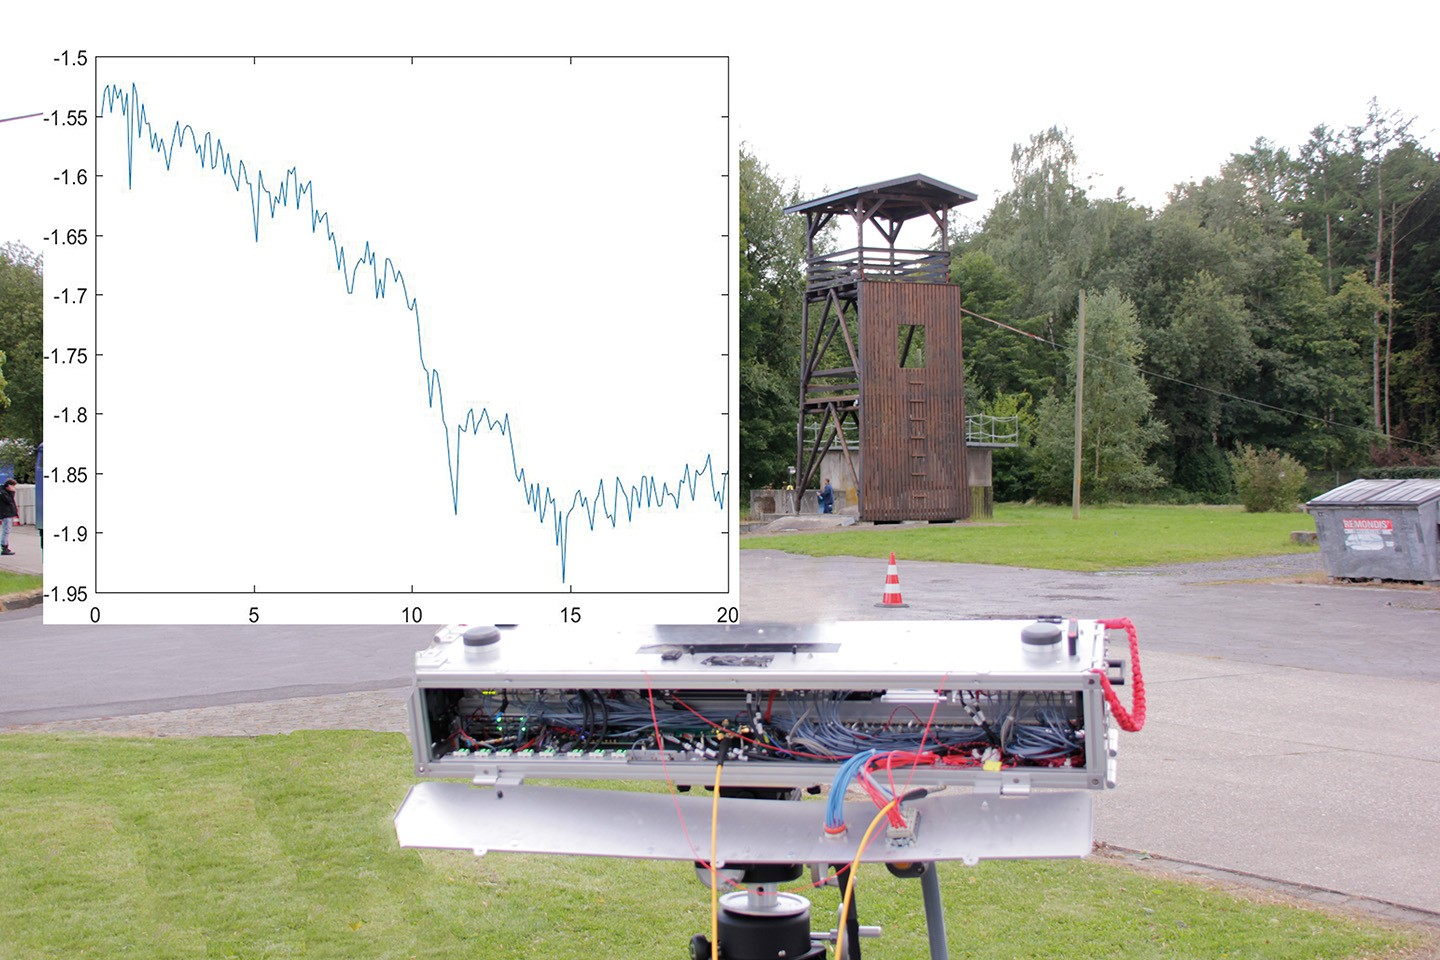 Tilting building represented by a tower being pulled with a winch. The curve shows the movement in millimeters over a 20-second period for an individual radar image point.